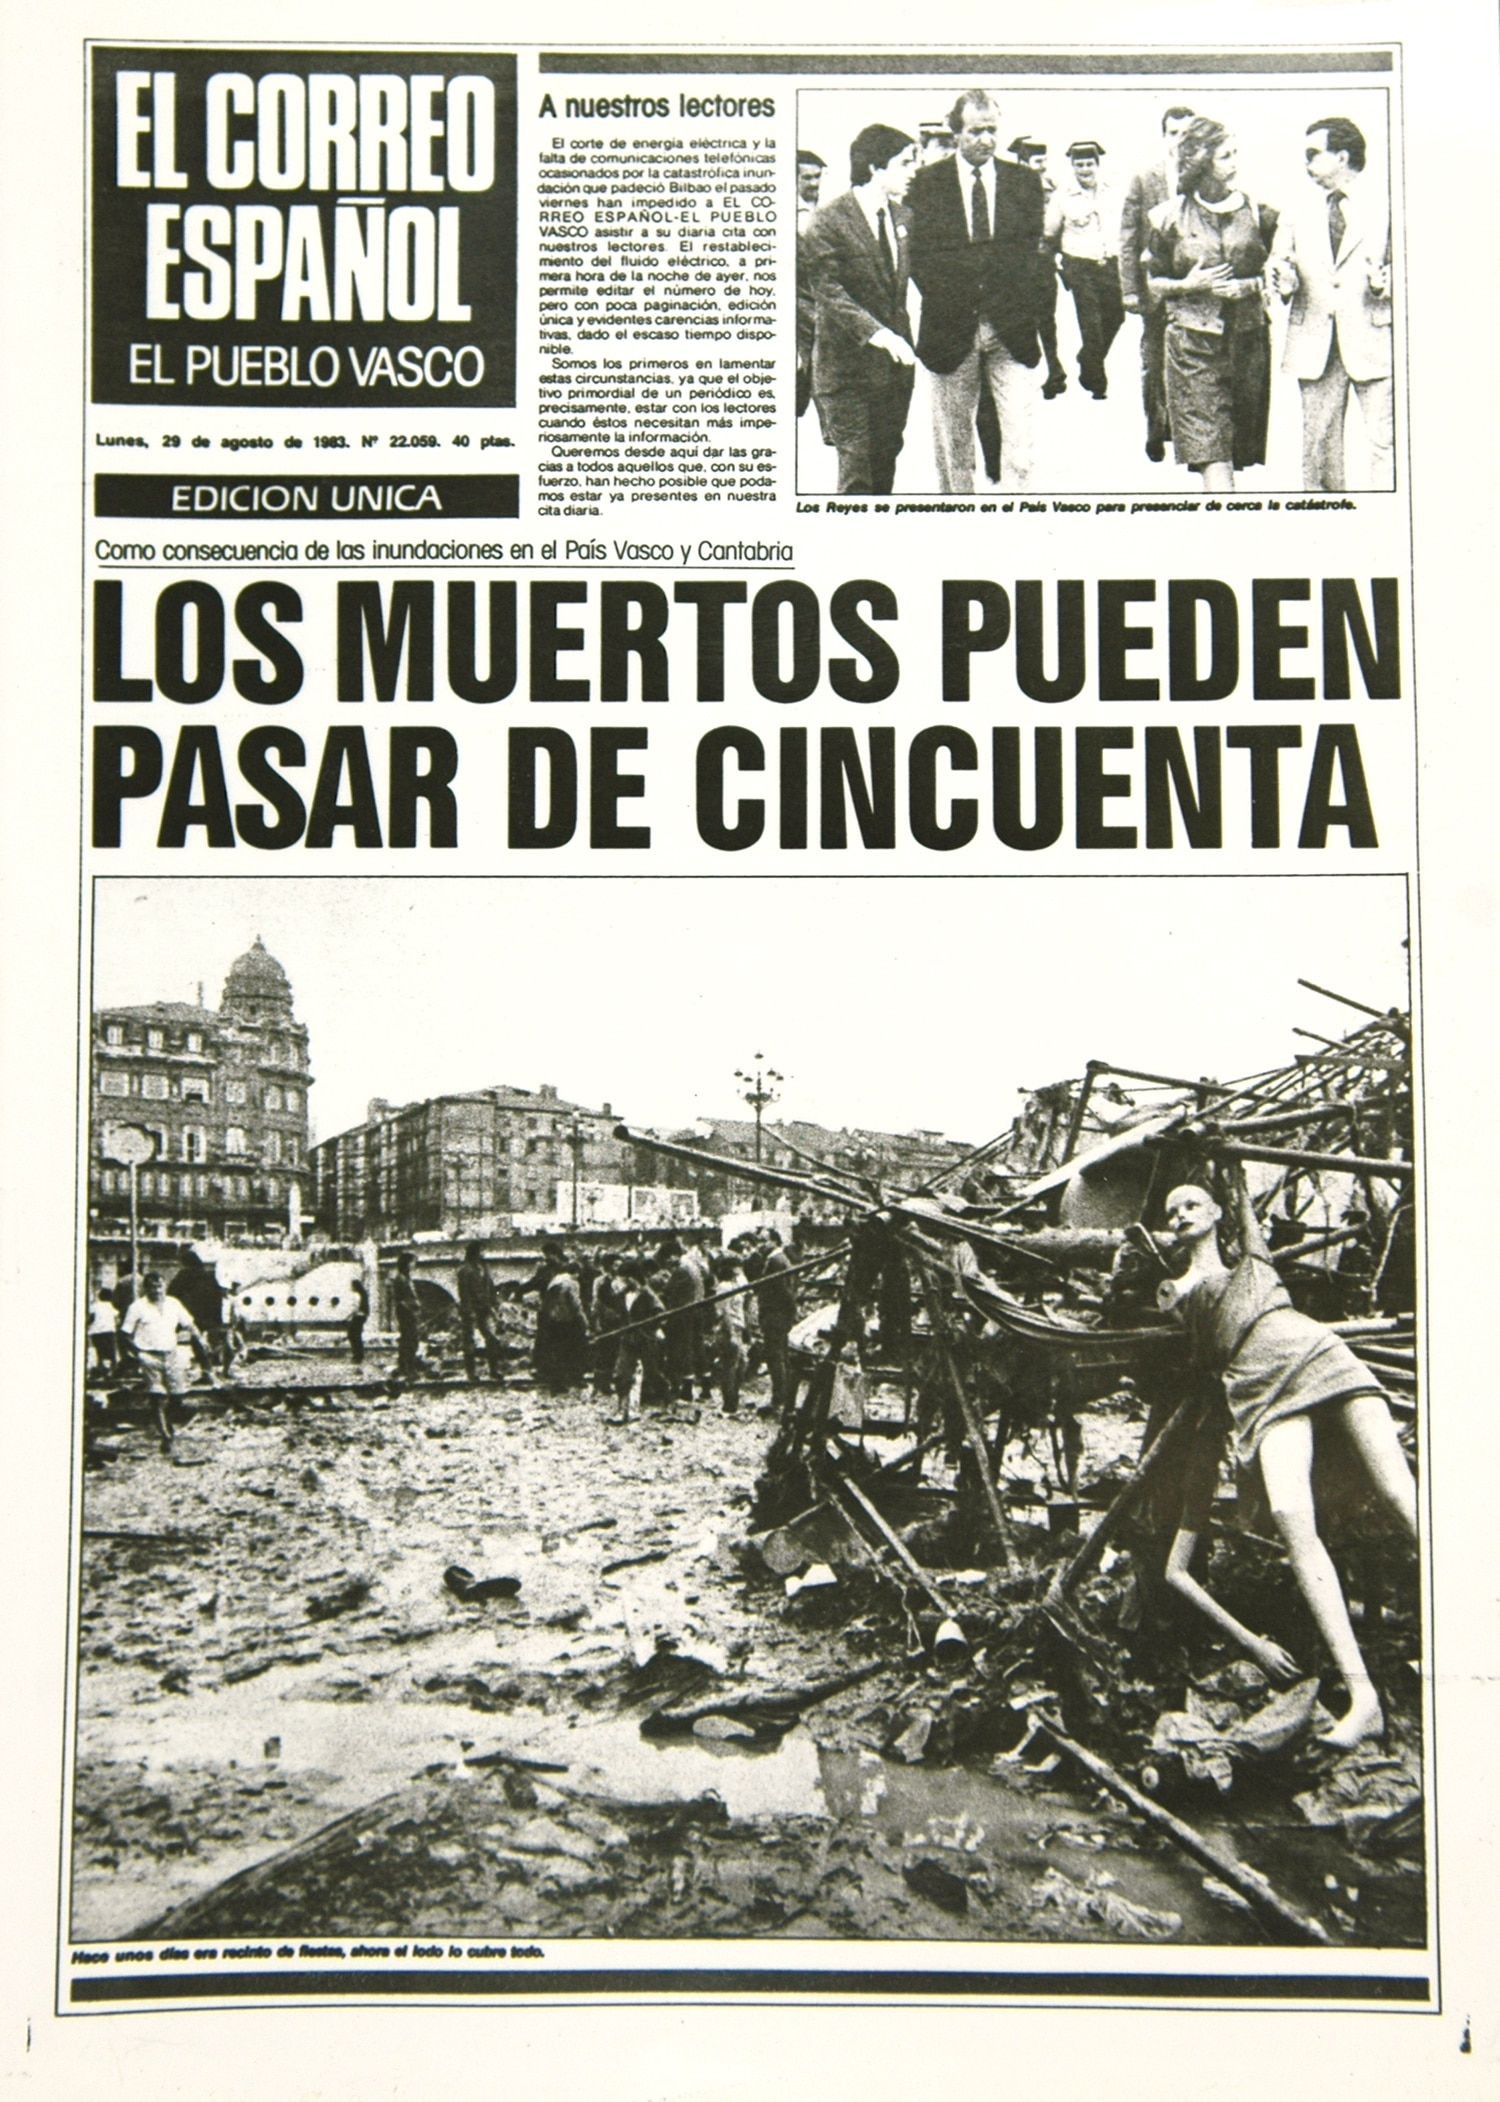 The 1983 BIlbao catastrophe